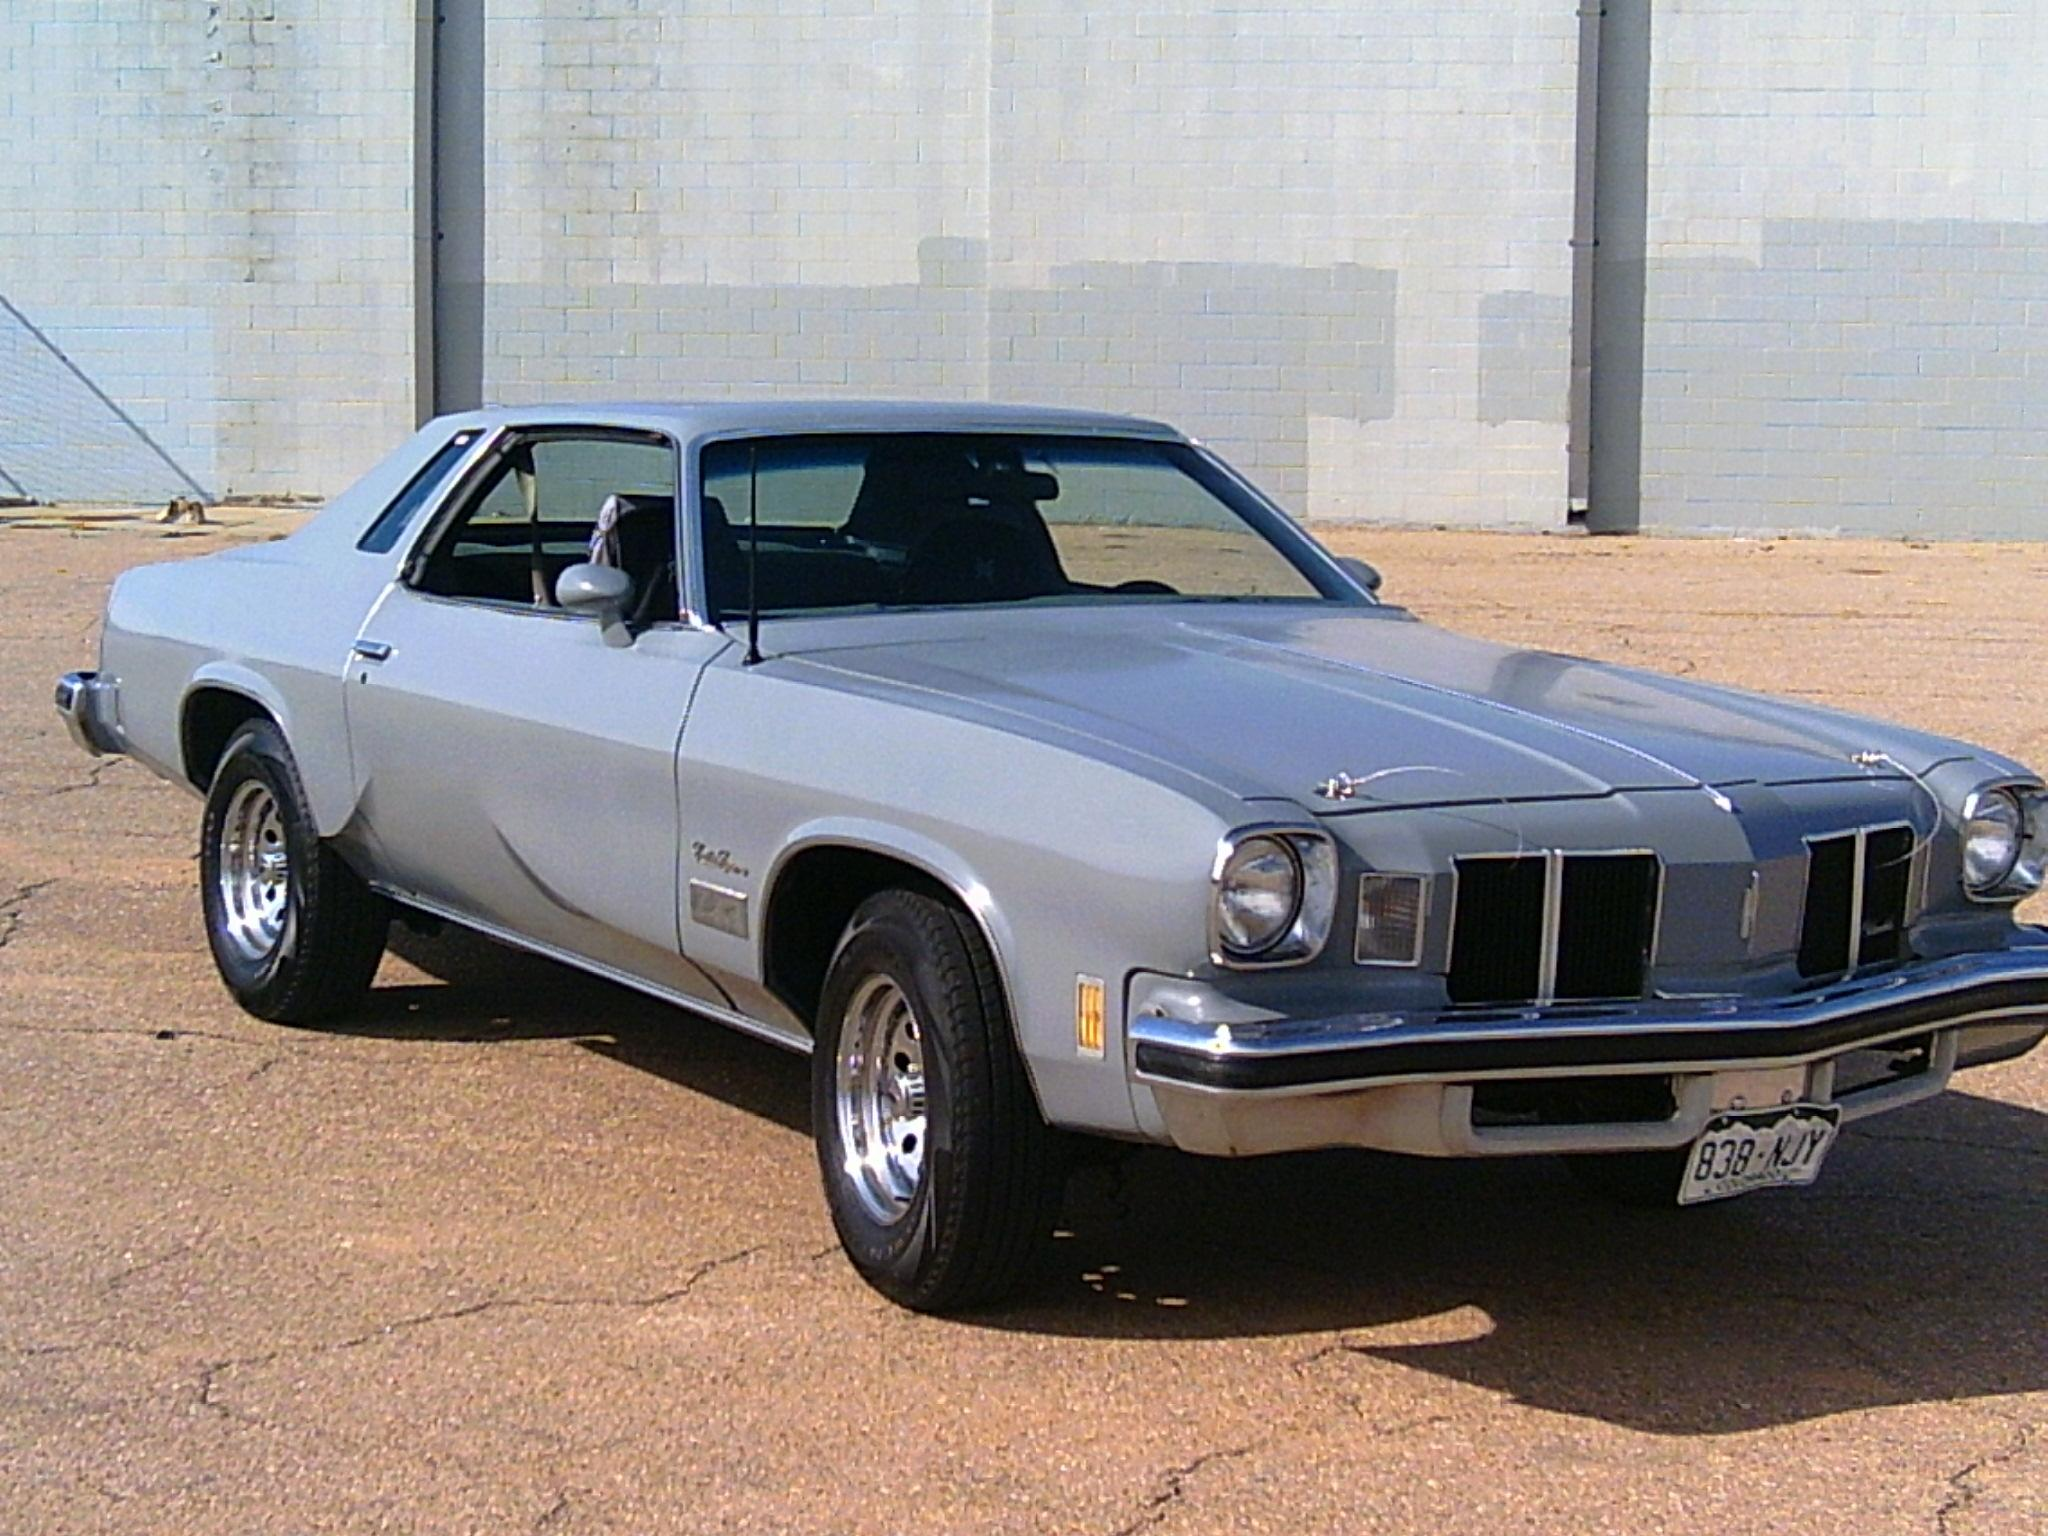 Oldsmobile Cutlass Supreme #30